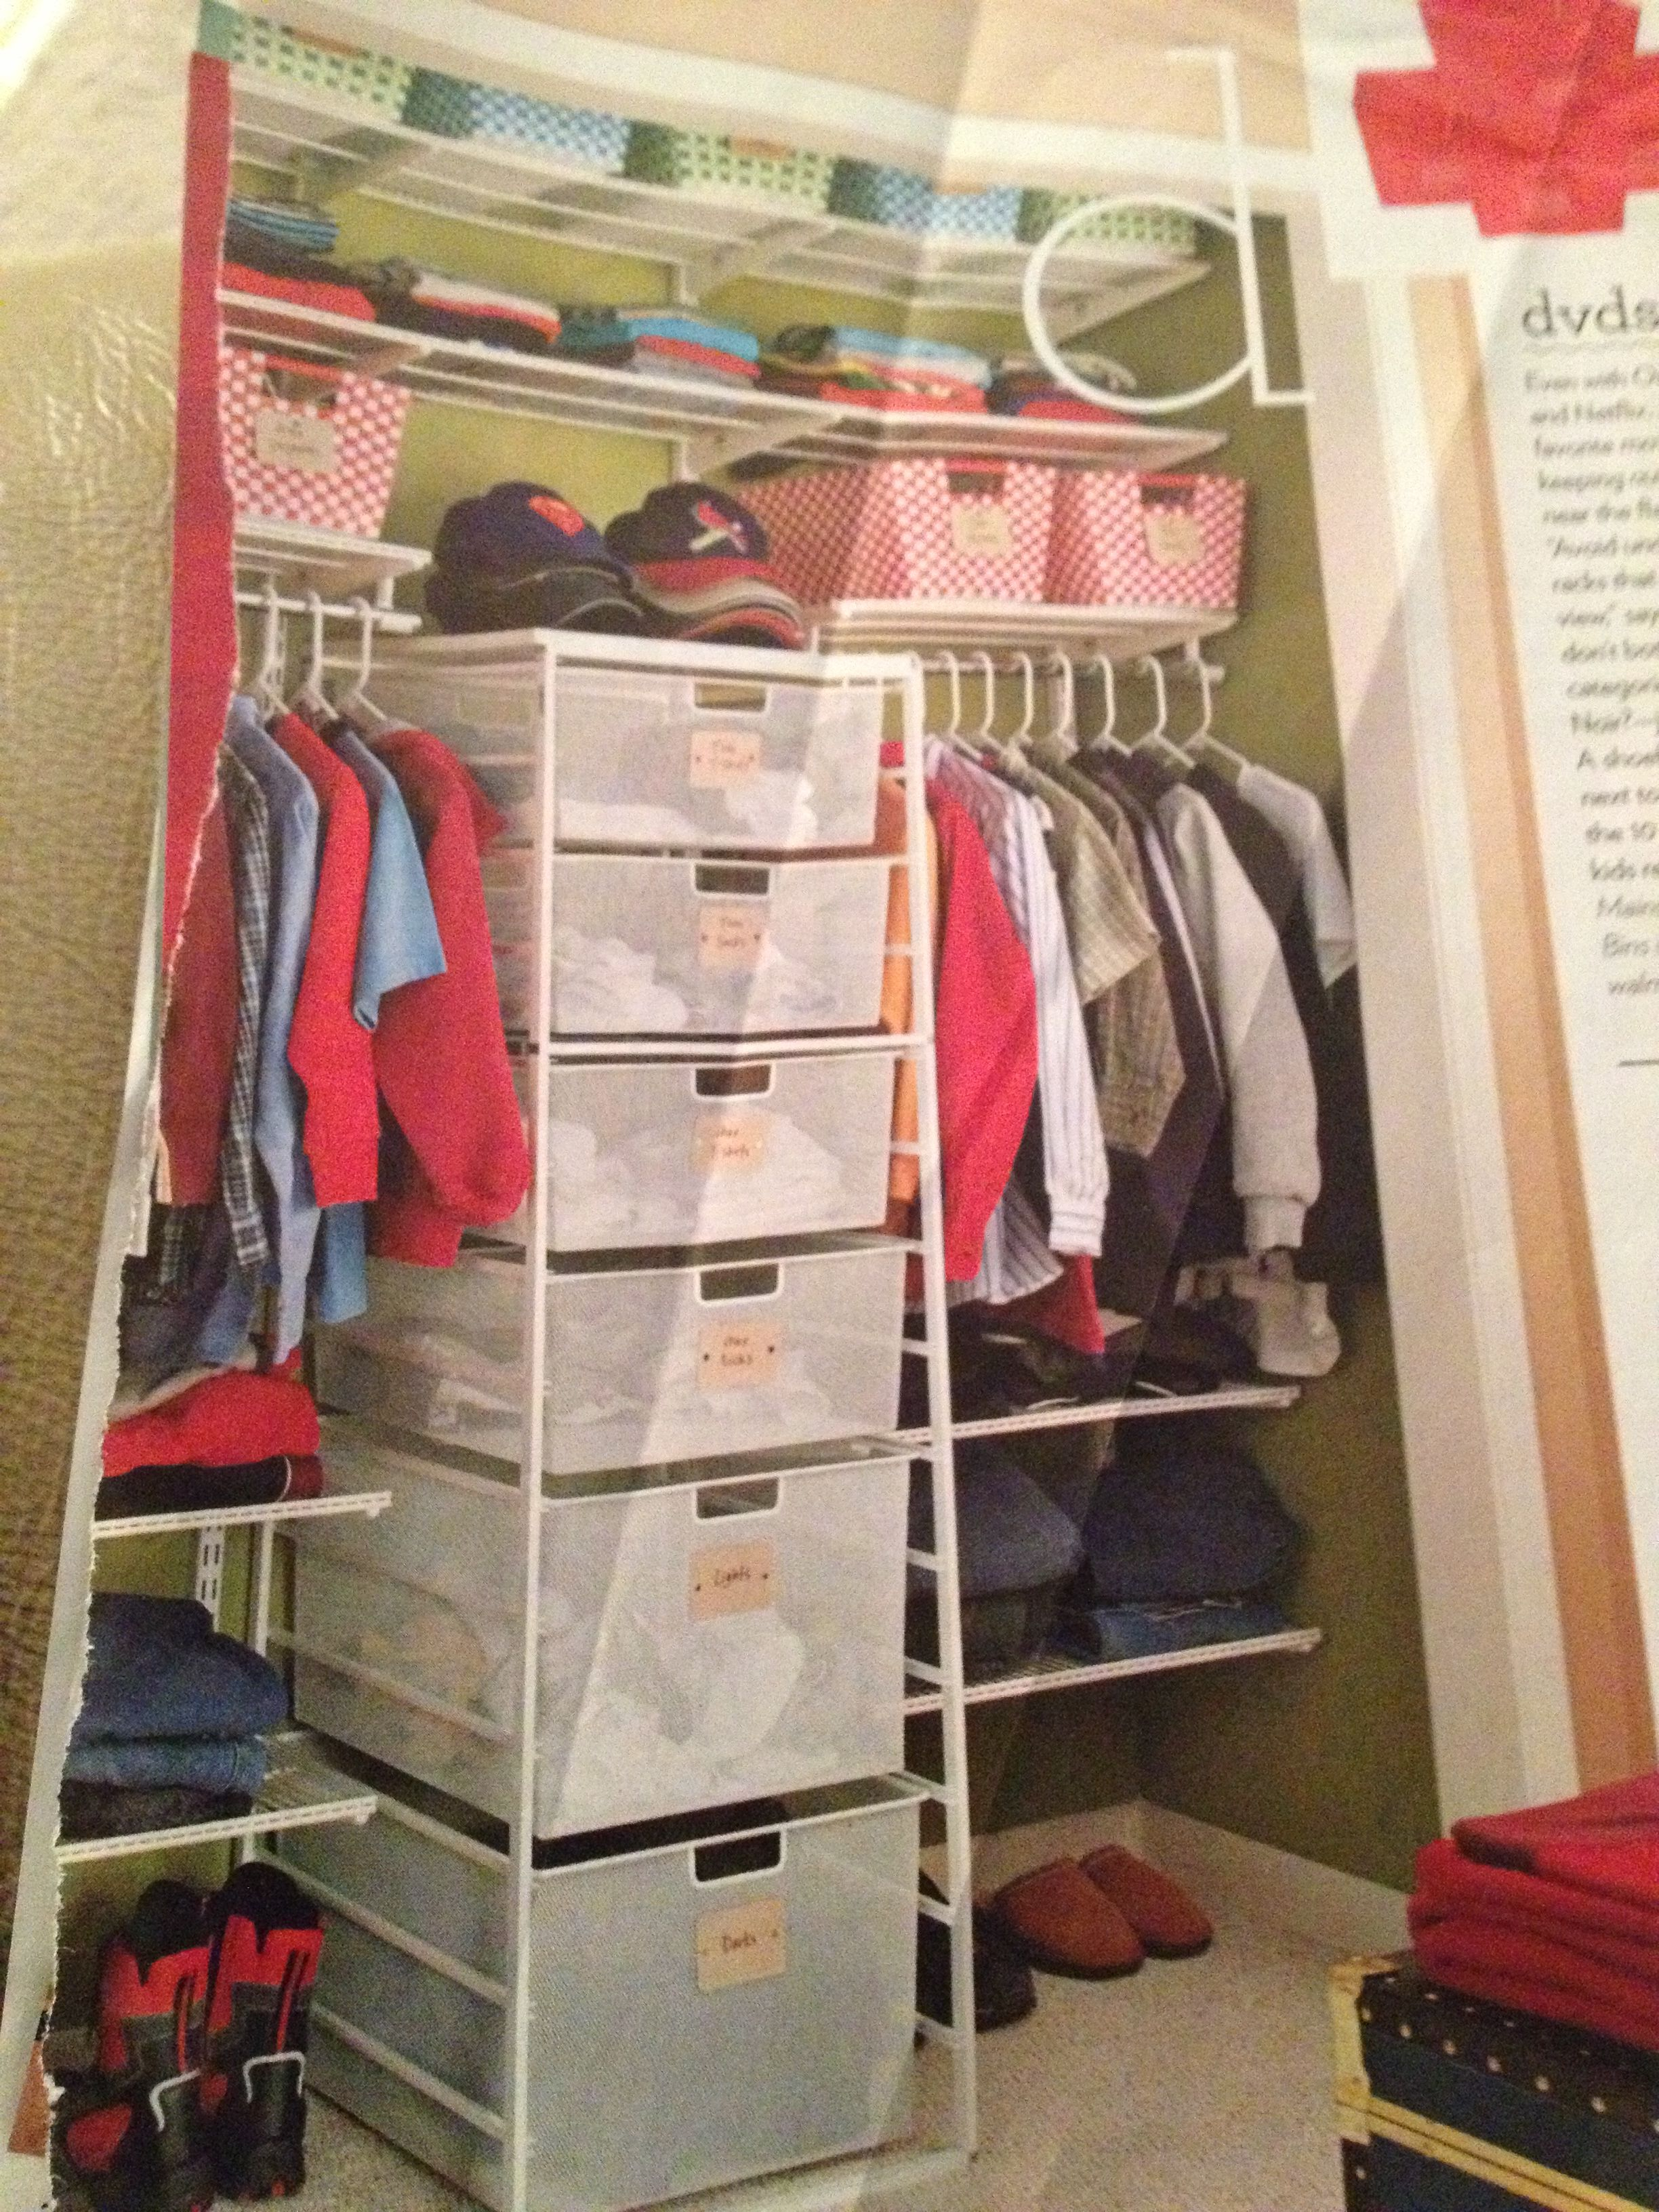 This closet idea is perfect for a kid's closet.